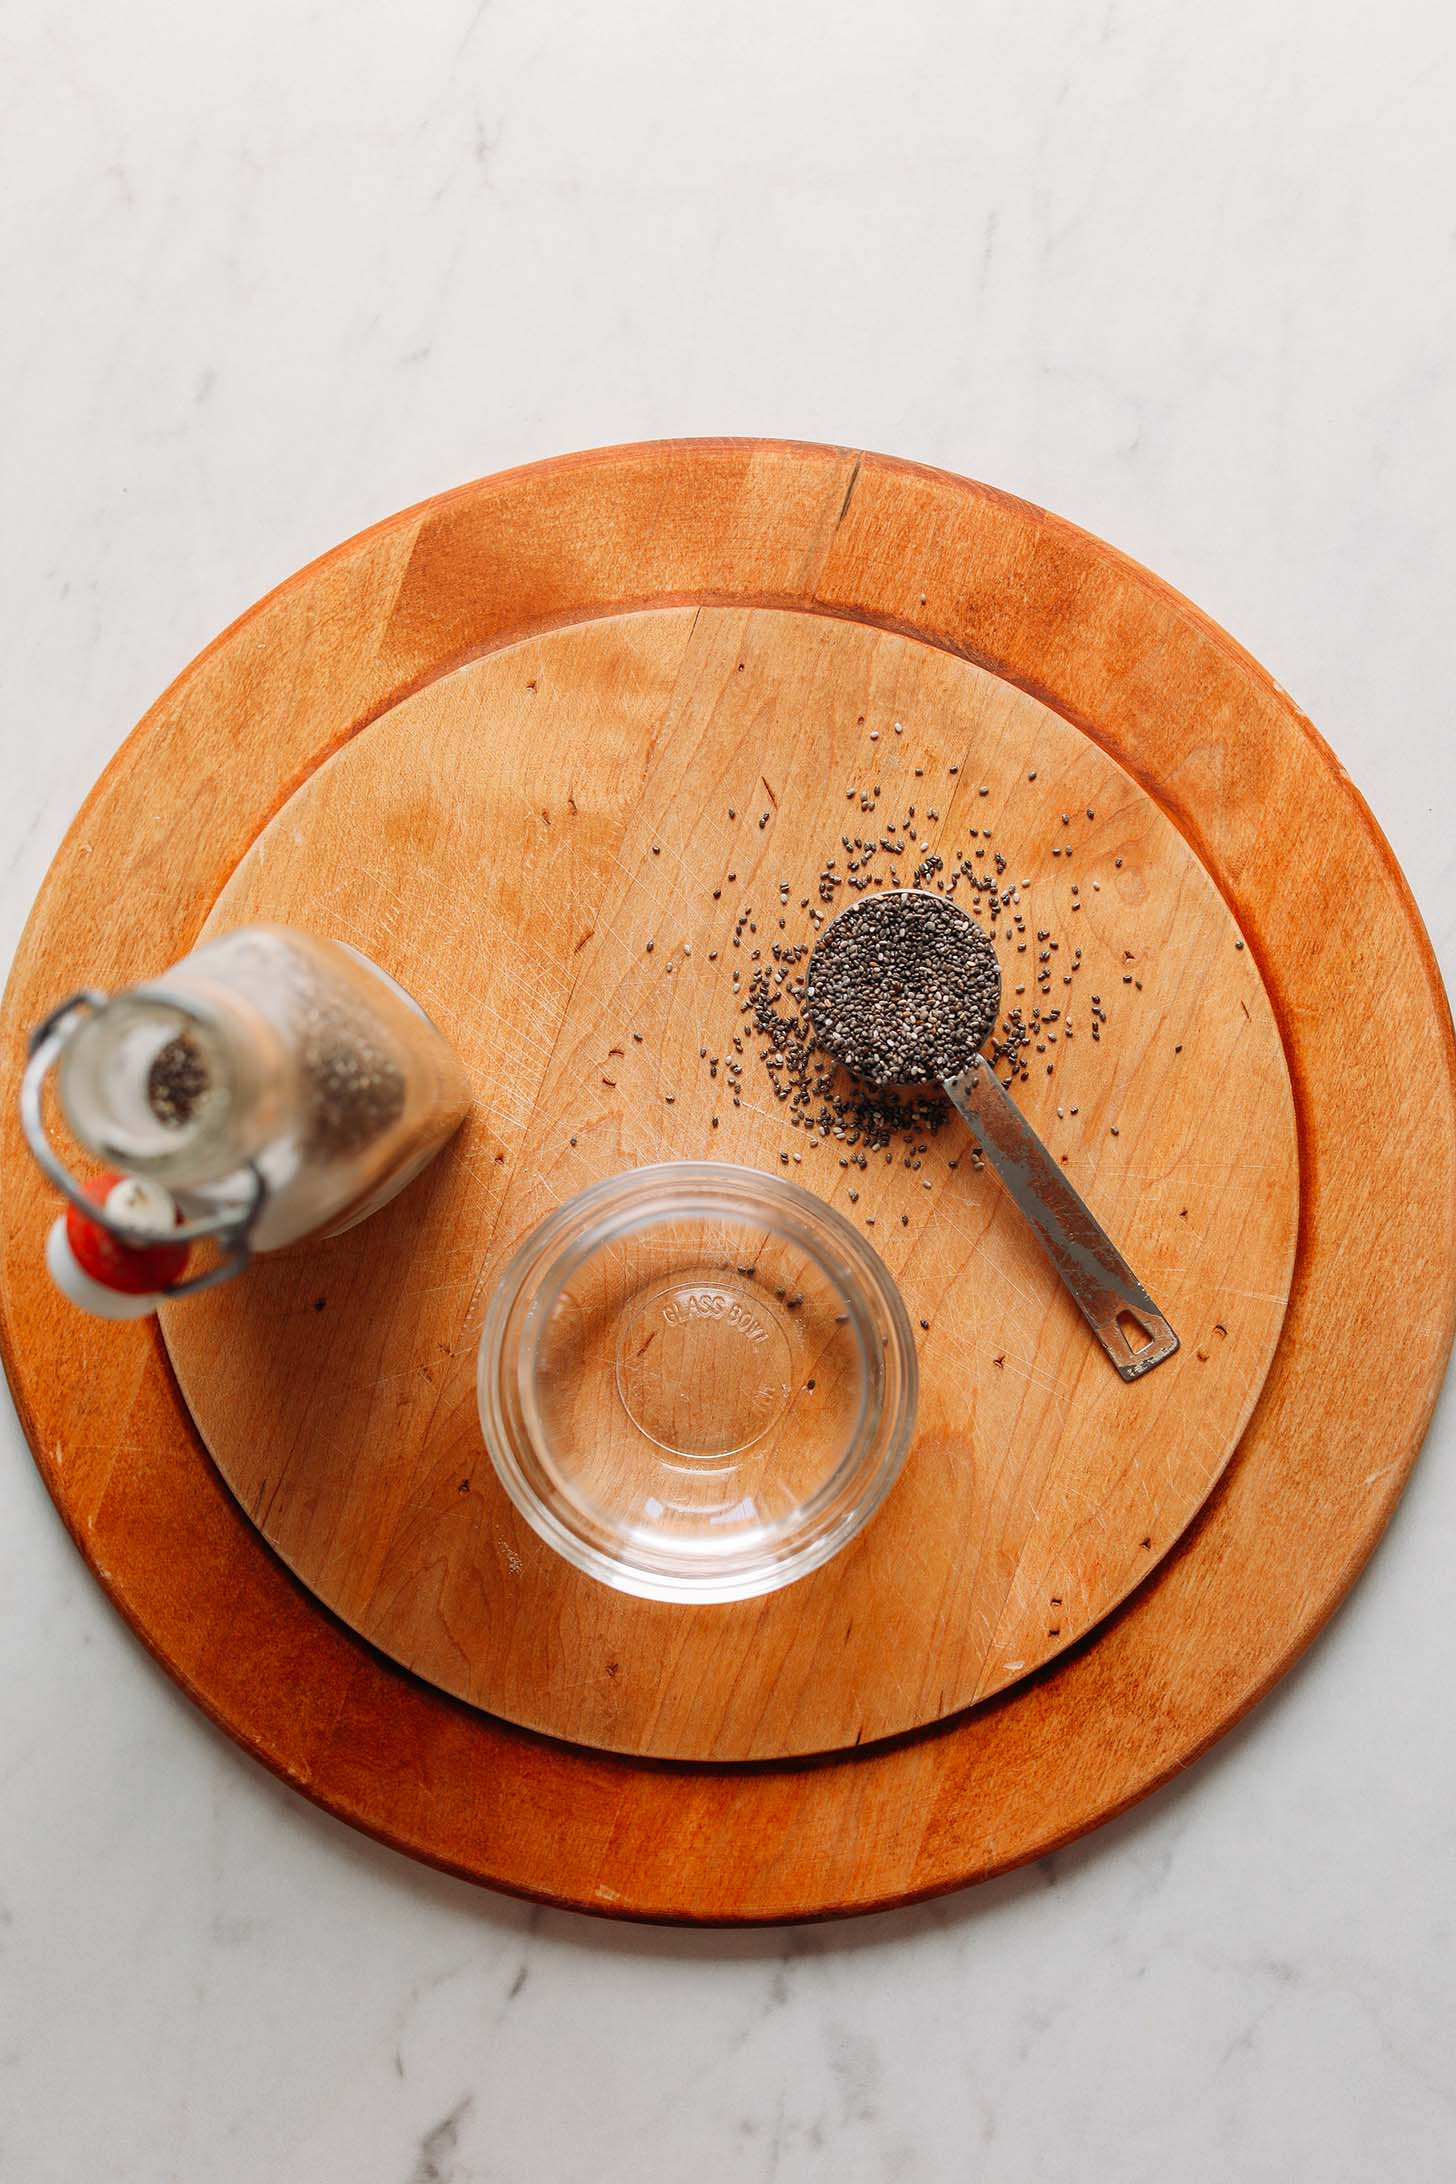 Chia seeds and water on a cutting board for making our chia egg recipe